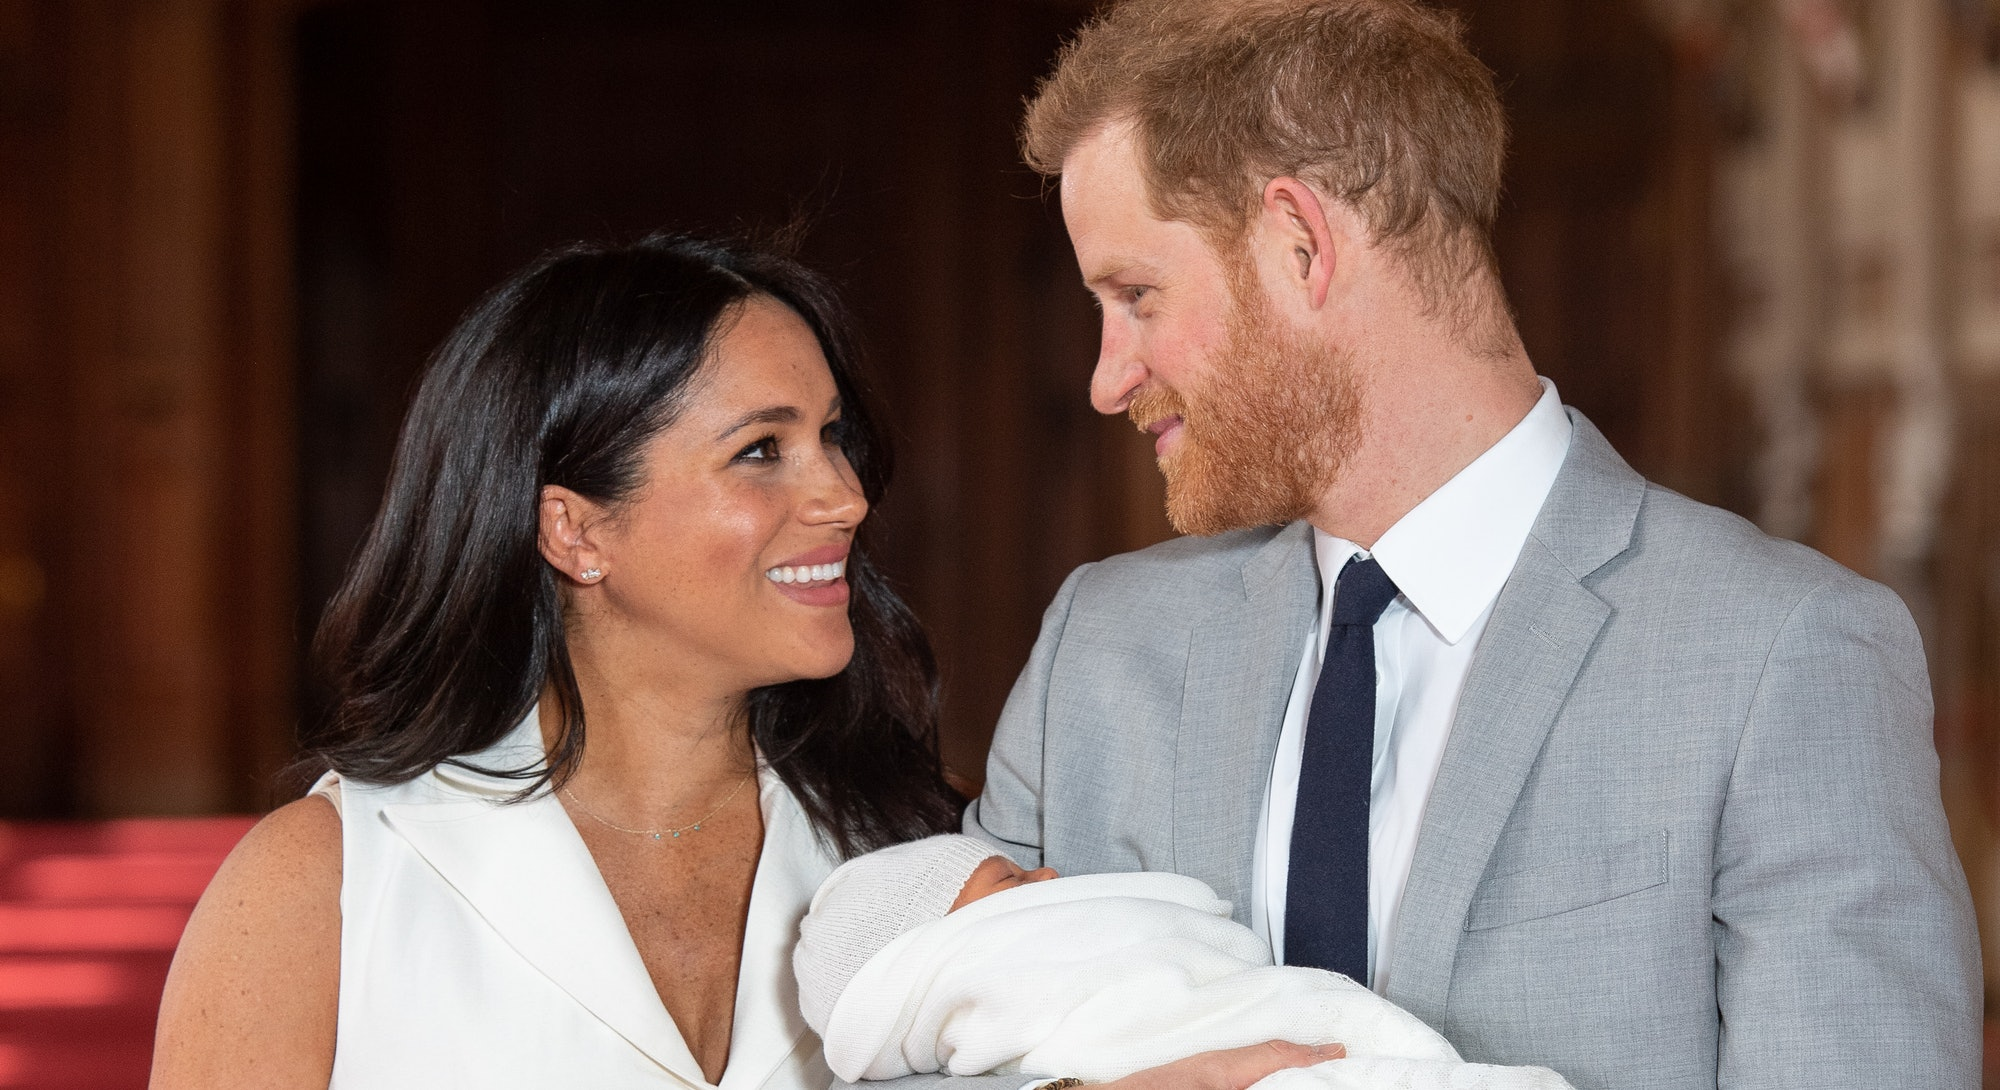 WINDSOR, ENGLAND - MAY 08: Prince Harry, Duke of Sussex and Meghan, Duchess of Sussex, pose with the...